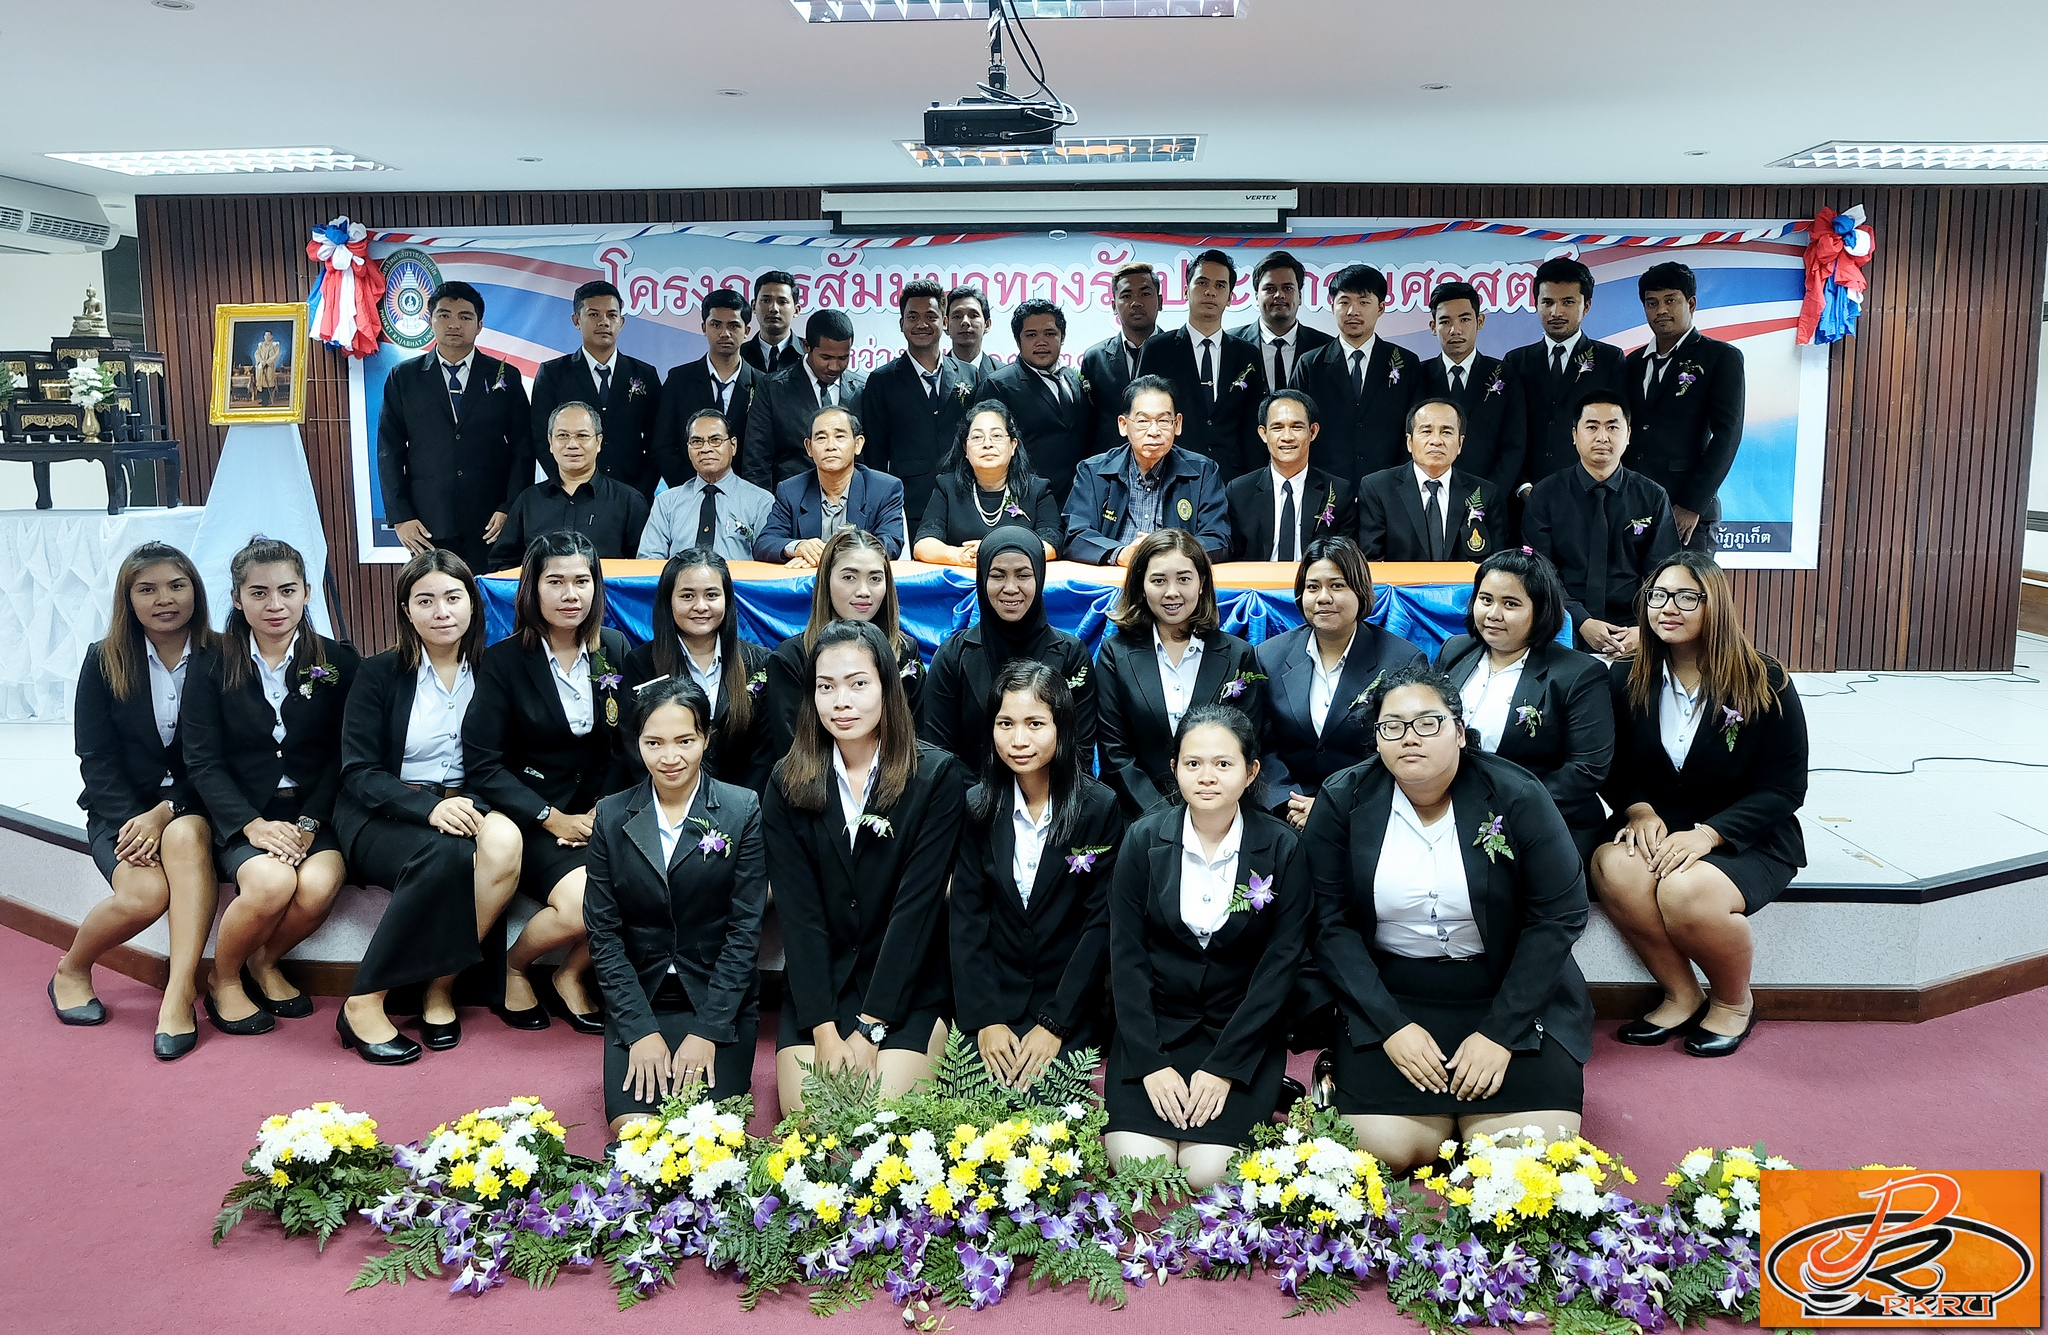 phuket public administration program may 2017 14